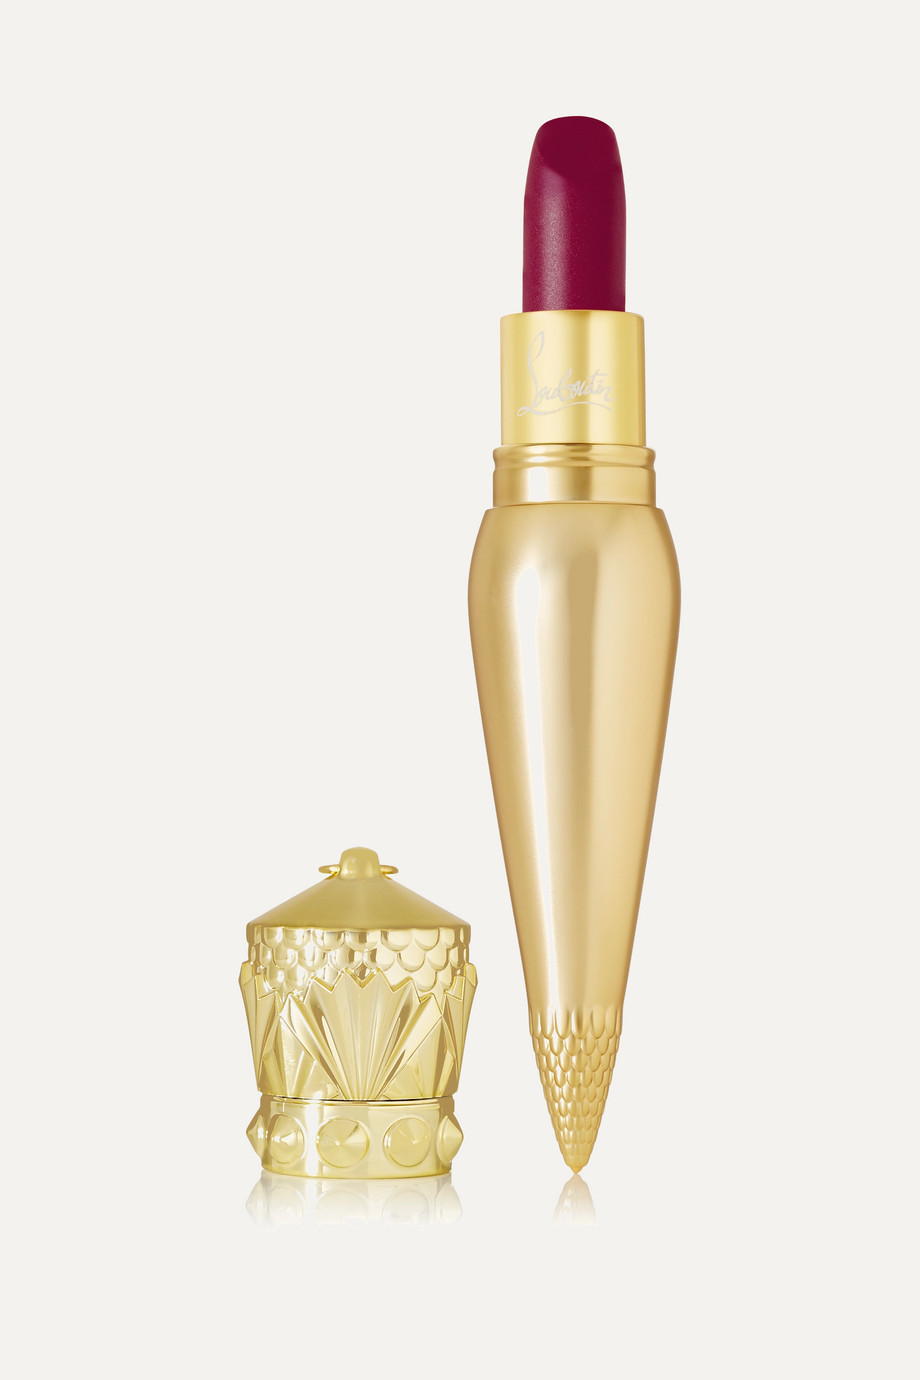 Christian Louboutin Beauty Velvet Matte Lip Colour – So Tango – Lippenstift